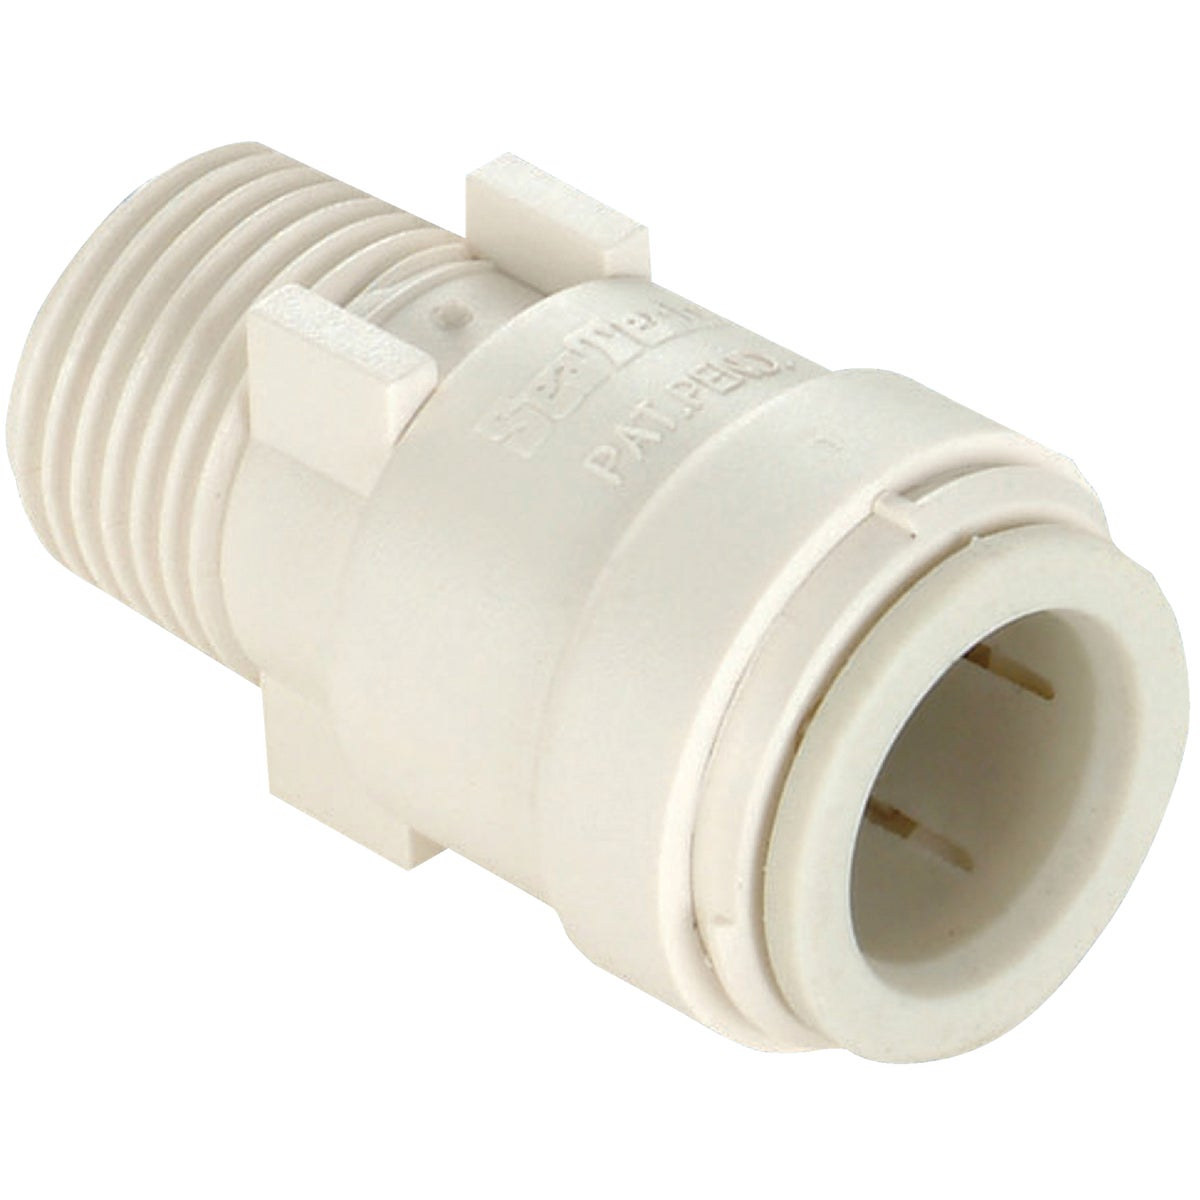 1/2CTSX3/8MPT ADAPTER - P-609 by Watts Pex